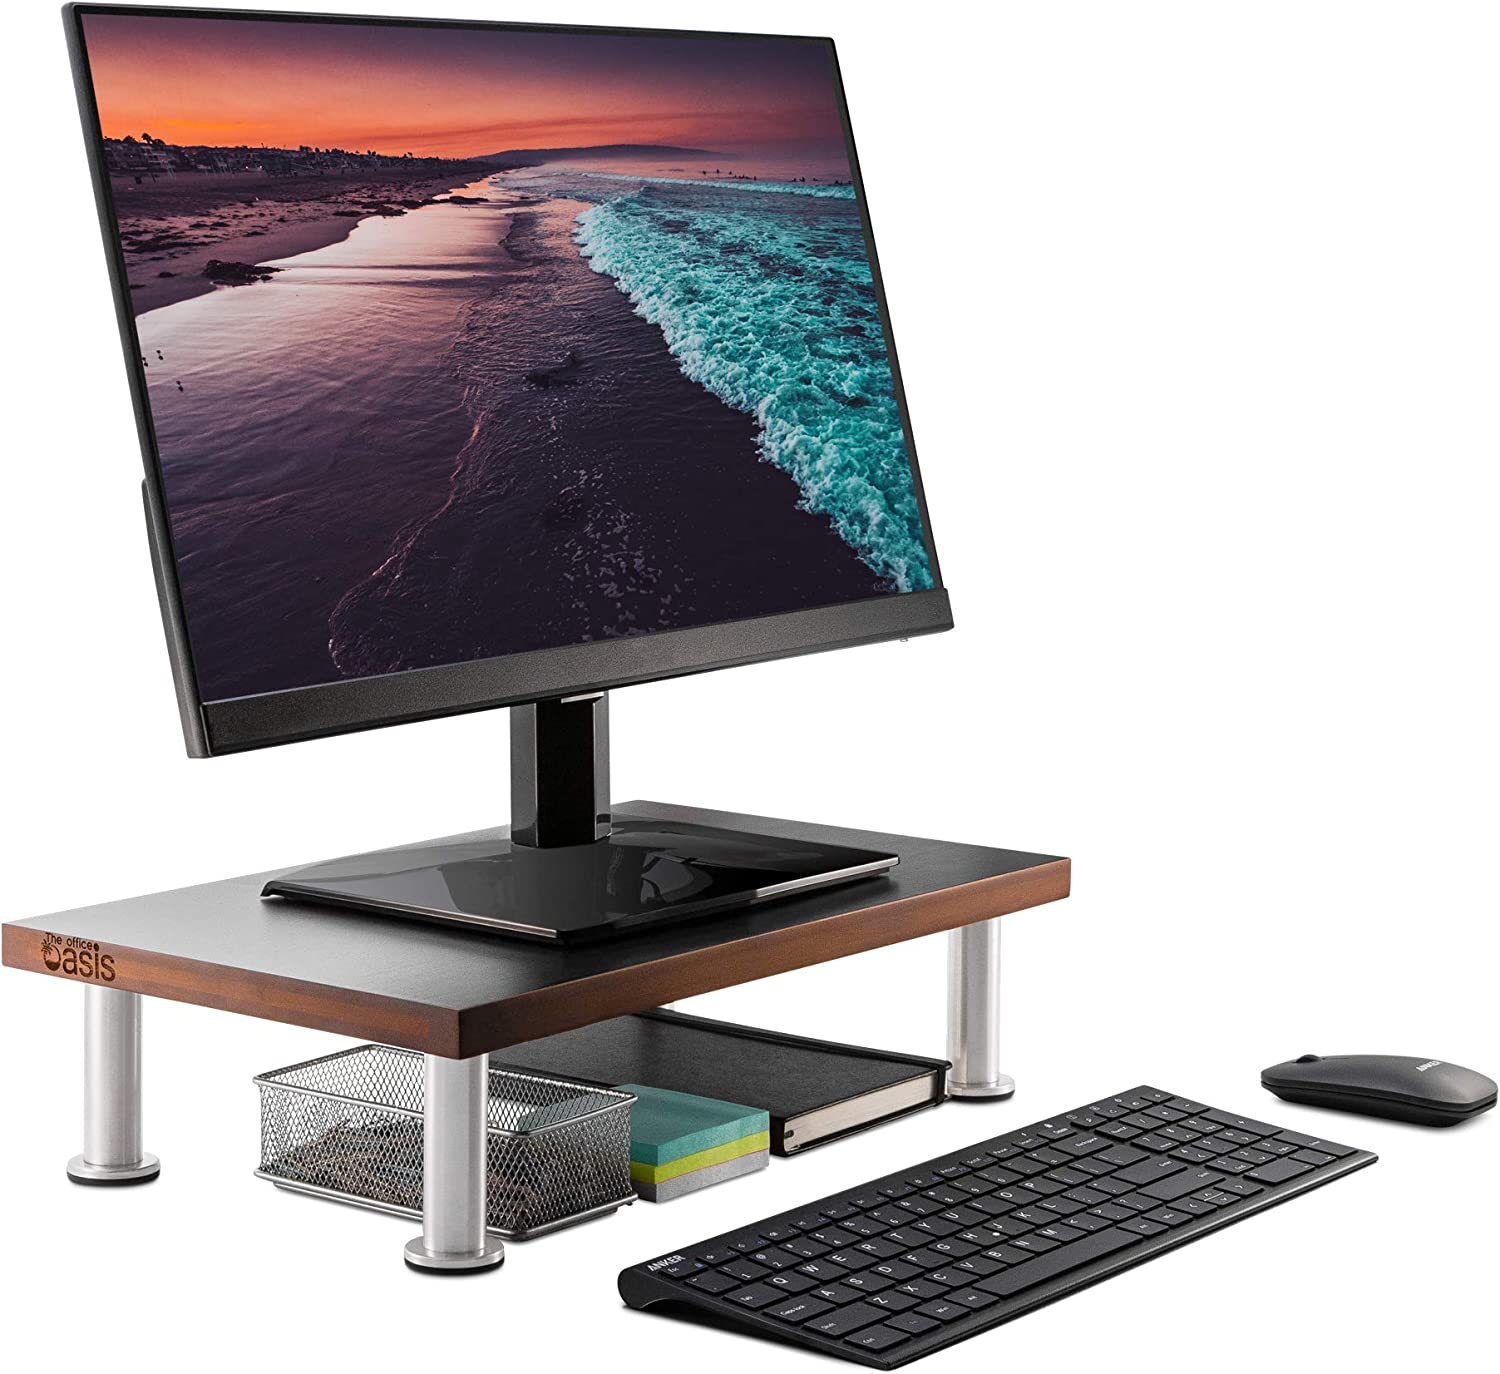 Monitor Stand for Computer & Laptop Screen - Solid Bamboo Riser Supports The Heaviest Monitors, Printers, or TVs - Perfect Shelf Organizer for Office Desk Accessories & TV Stands (Brown)